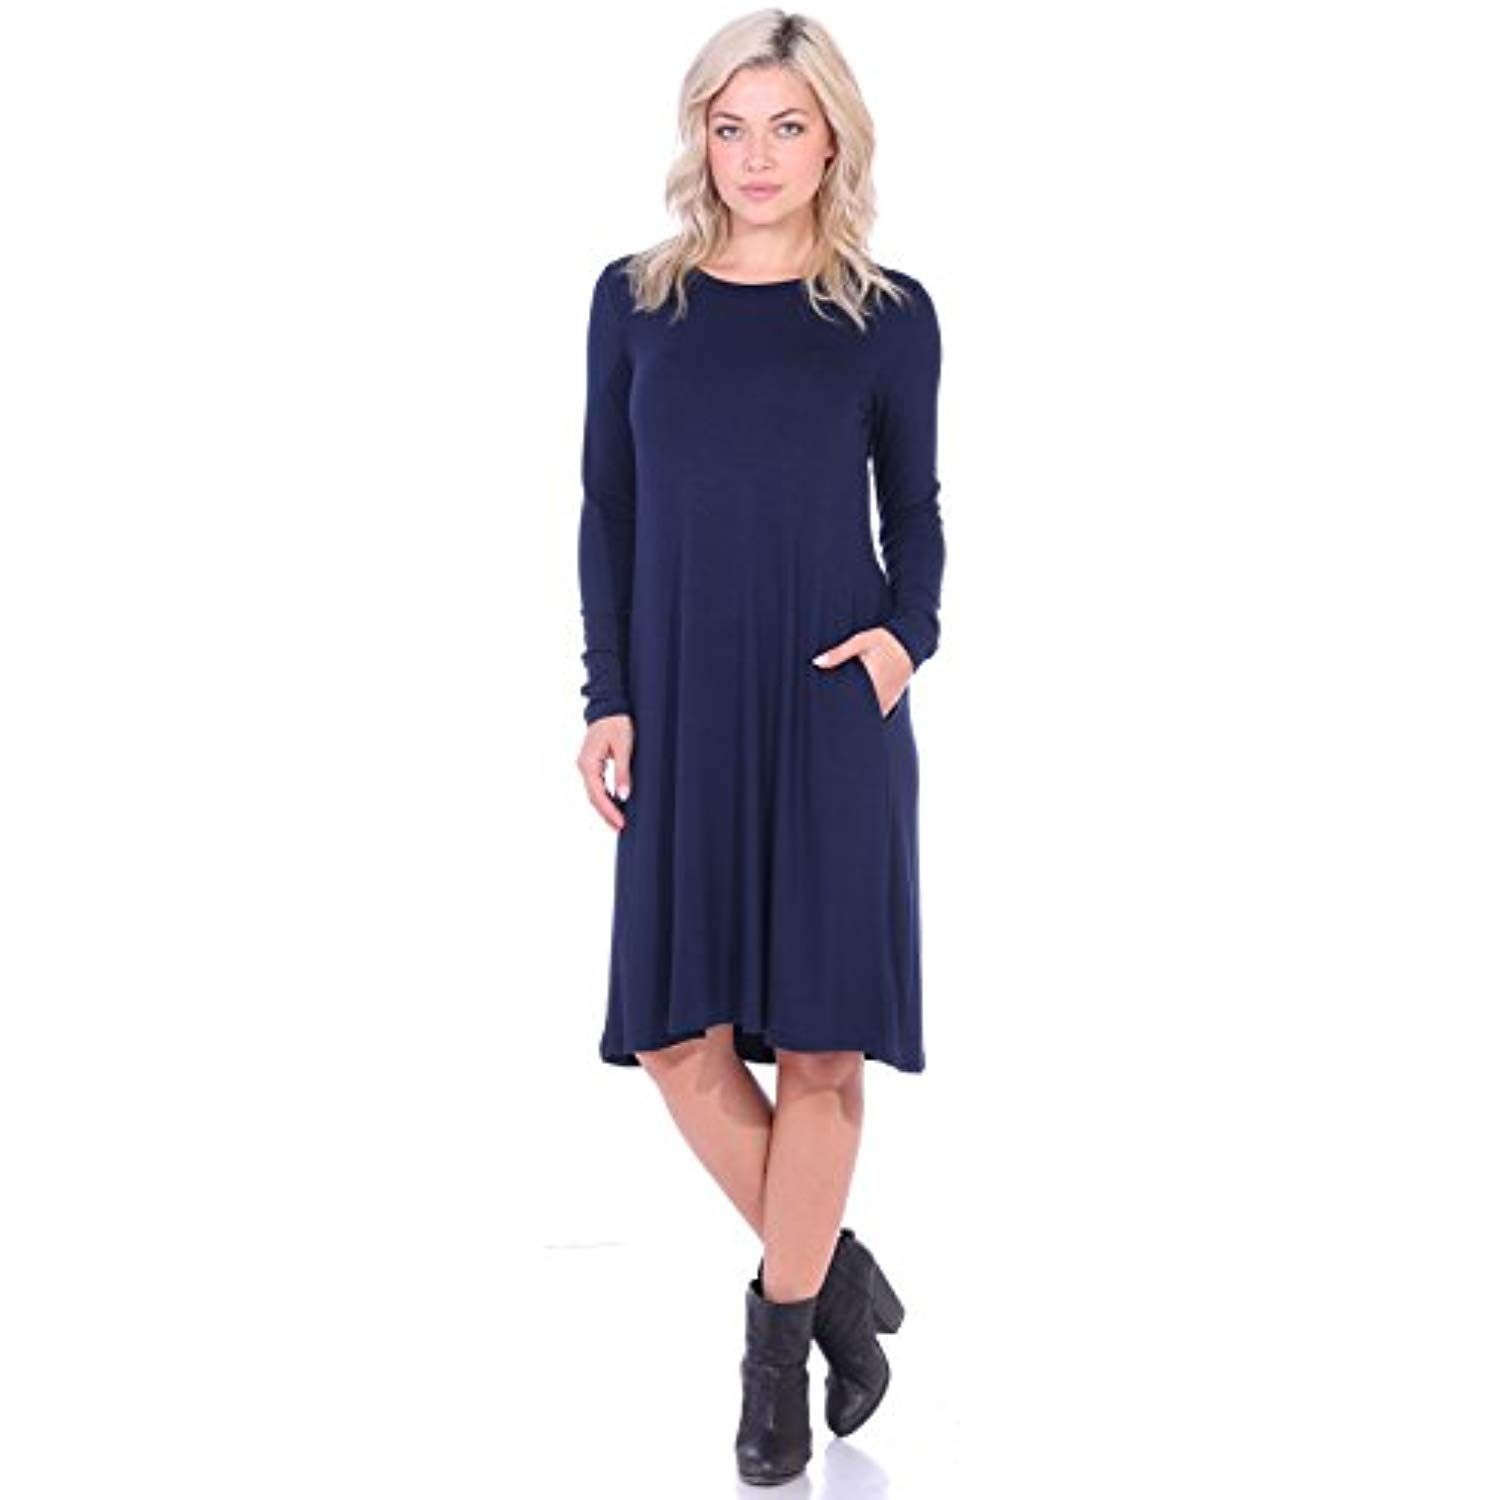 Womens Dress With Pockets Long Sleeve Below The Knee Length Swing Fall Dress Read More At The Image Link This Is Womens Dresses Fall Dresses Pocket Dress [ 1500 x 1500 Pixel ]